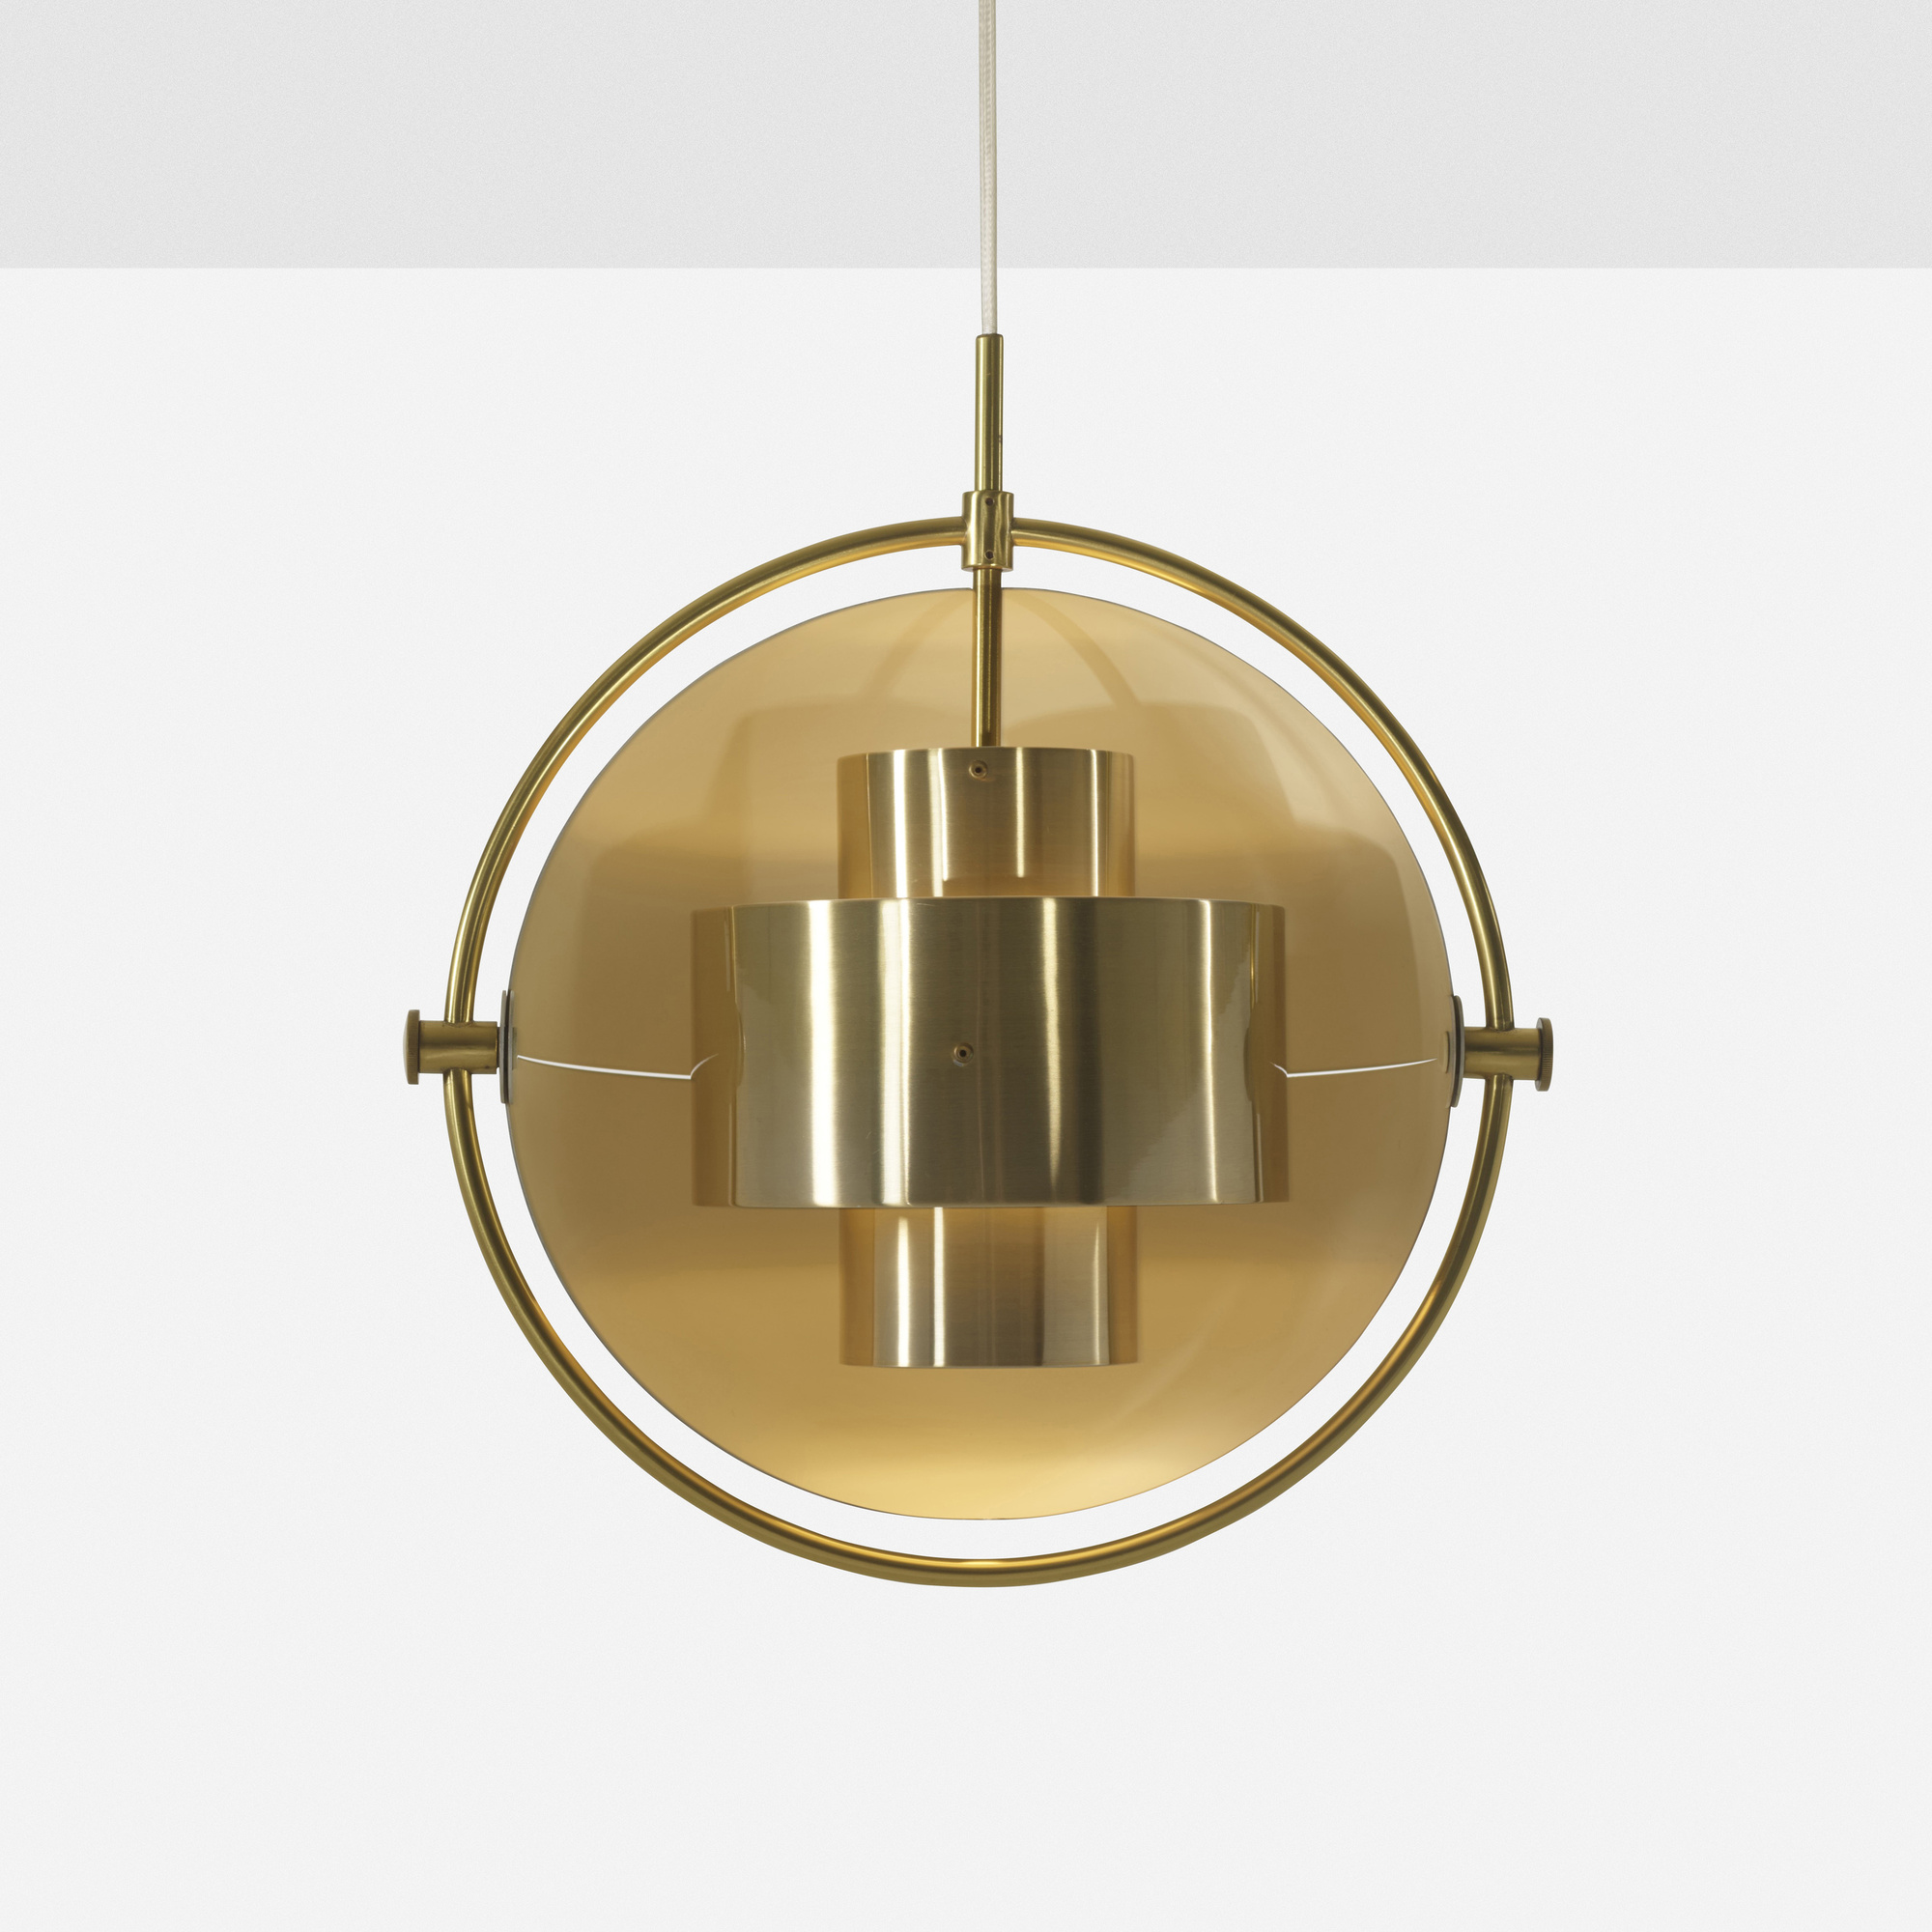 225: Louis Weisdorf / Multi-Lite pendant lamp (3 of 5)